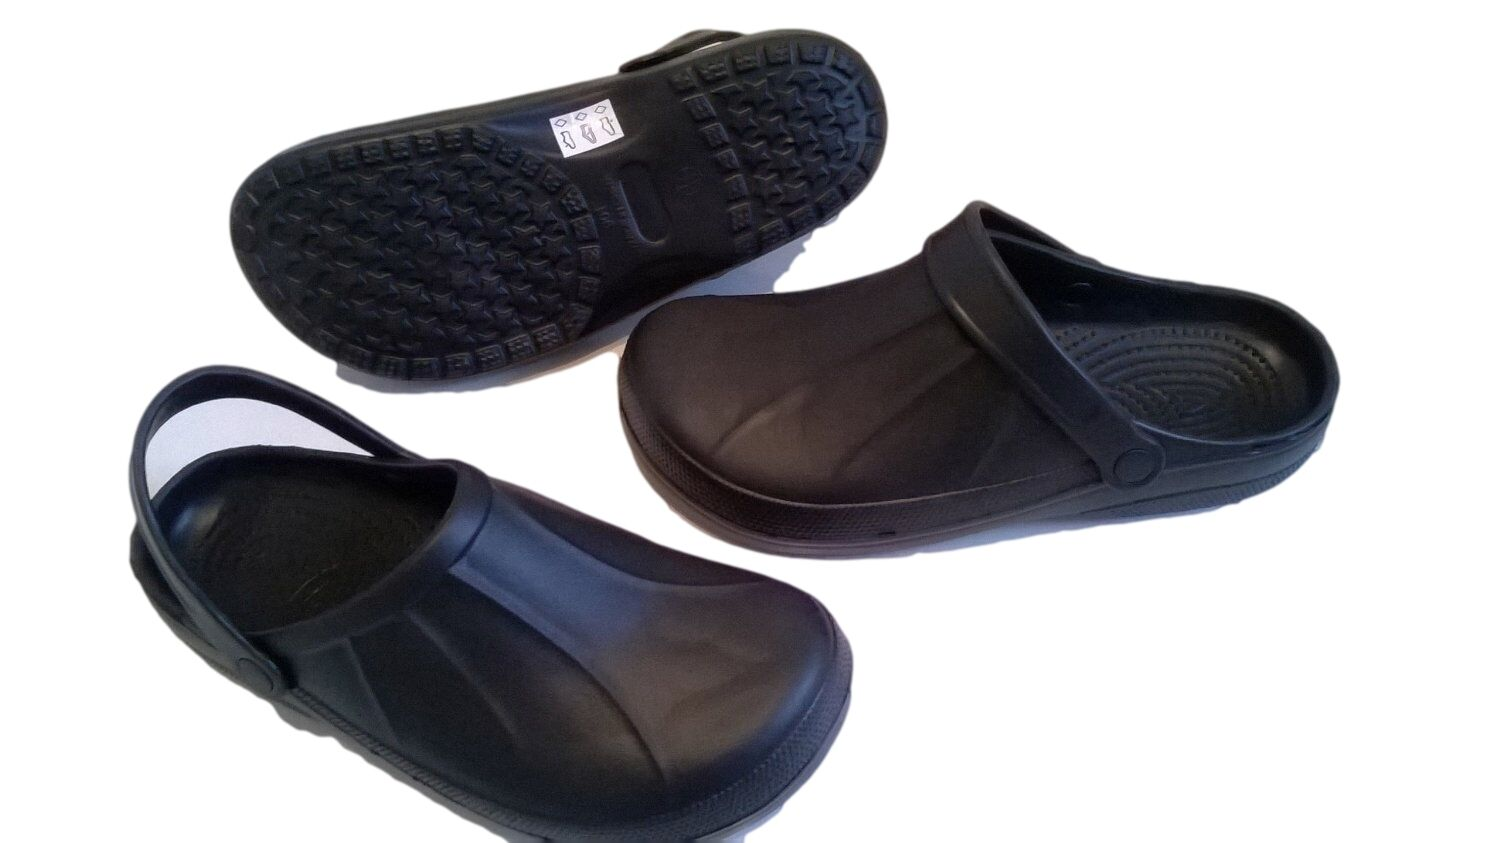 Chefs Kitchen Clogs Dental Catering Hospital Shoes Garden Beach Safety Footwear